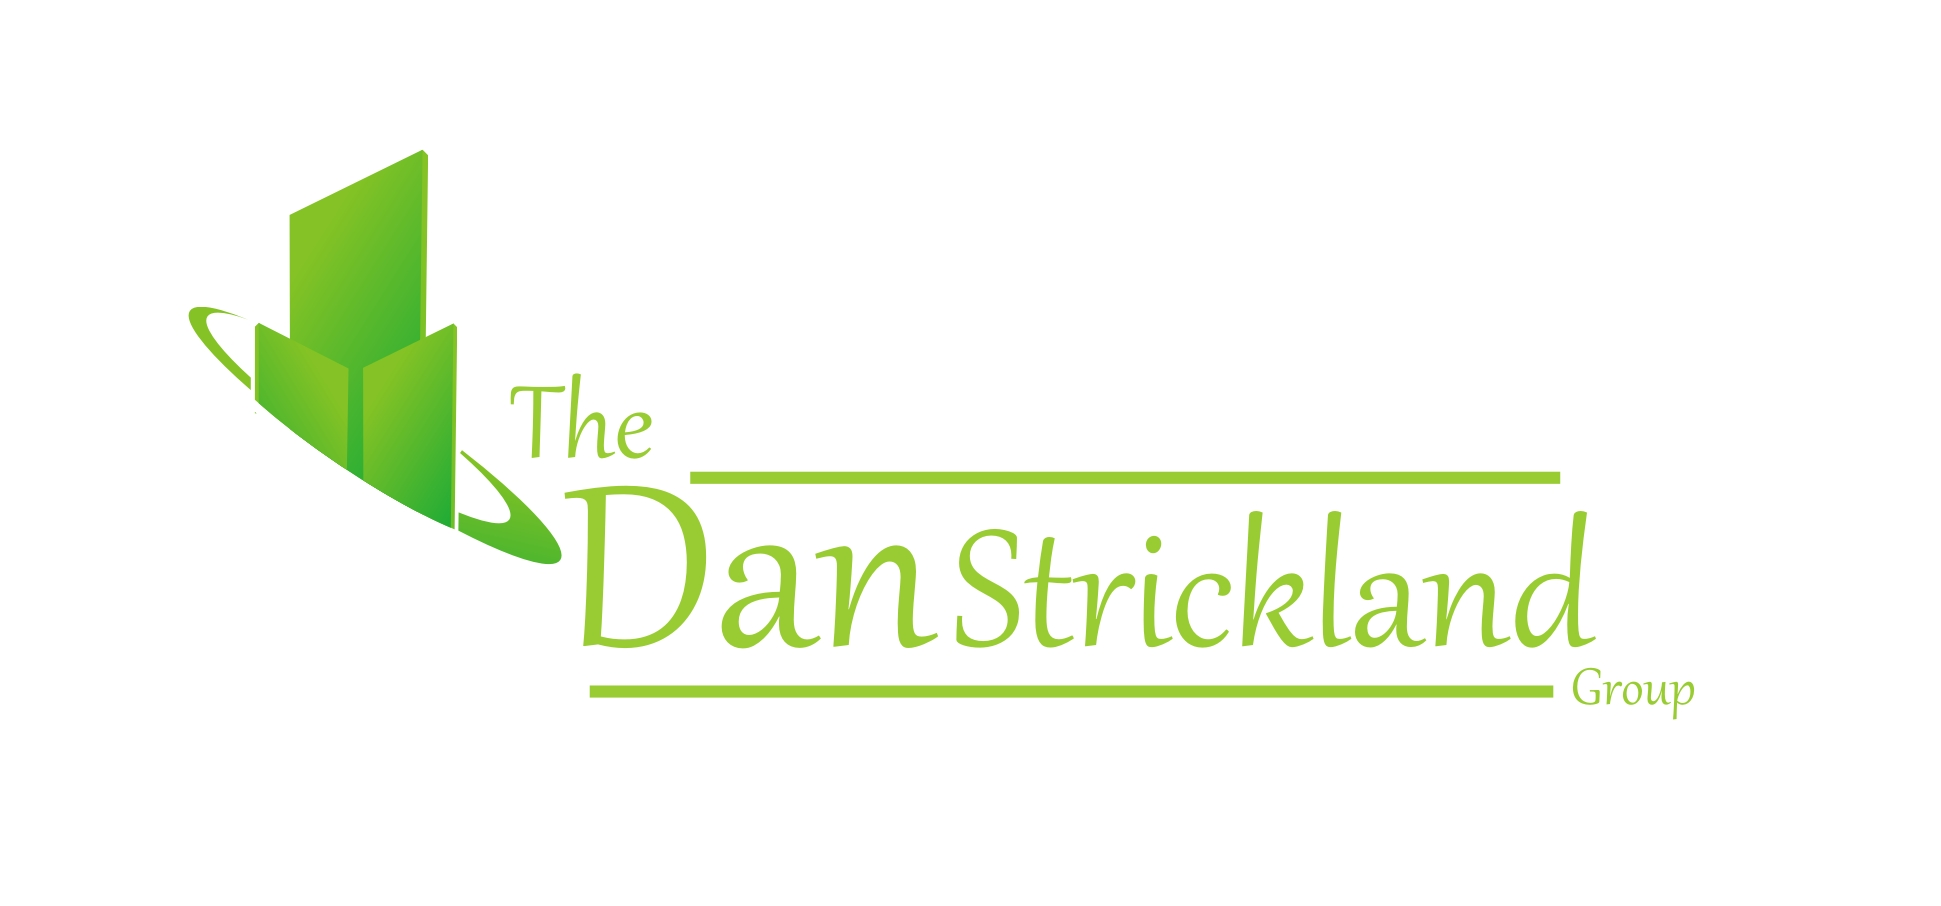 Logo Design by Choirul Jcd - Entry No. 156 in the Logo Design Contest Creative Logo Design for The Dan Strickland Group.